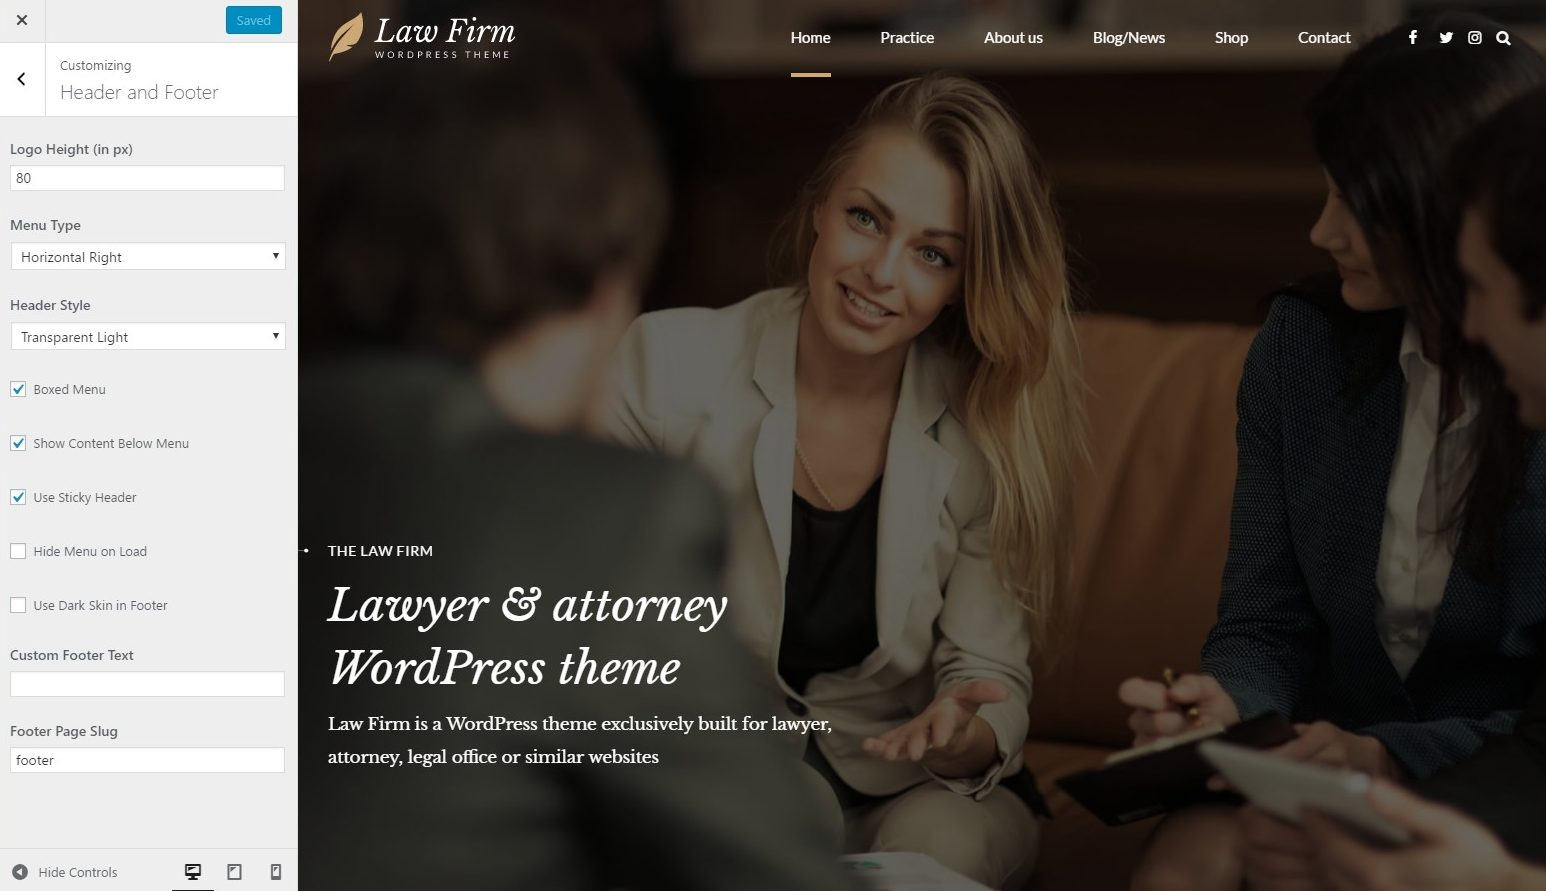 http://documentation.bold-themes.com/law-firm/wp-content/uploads/sites/15/2017/05/20-1-e1496309874345.jpg